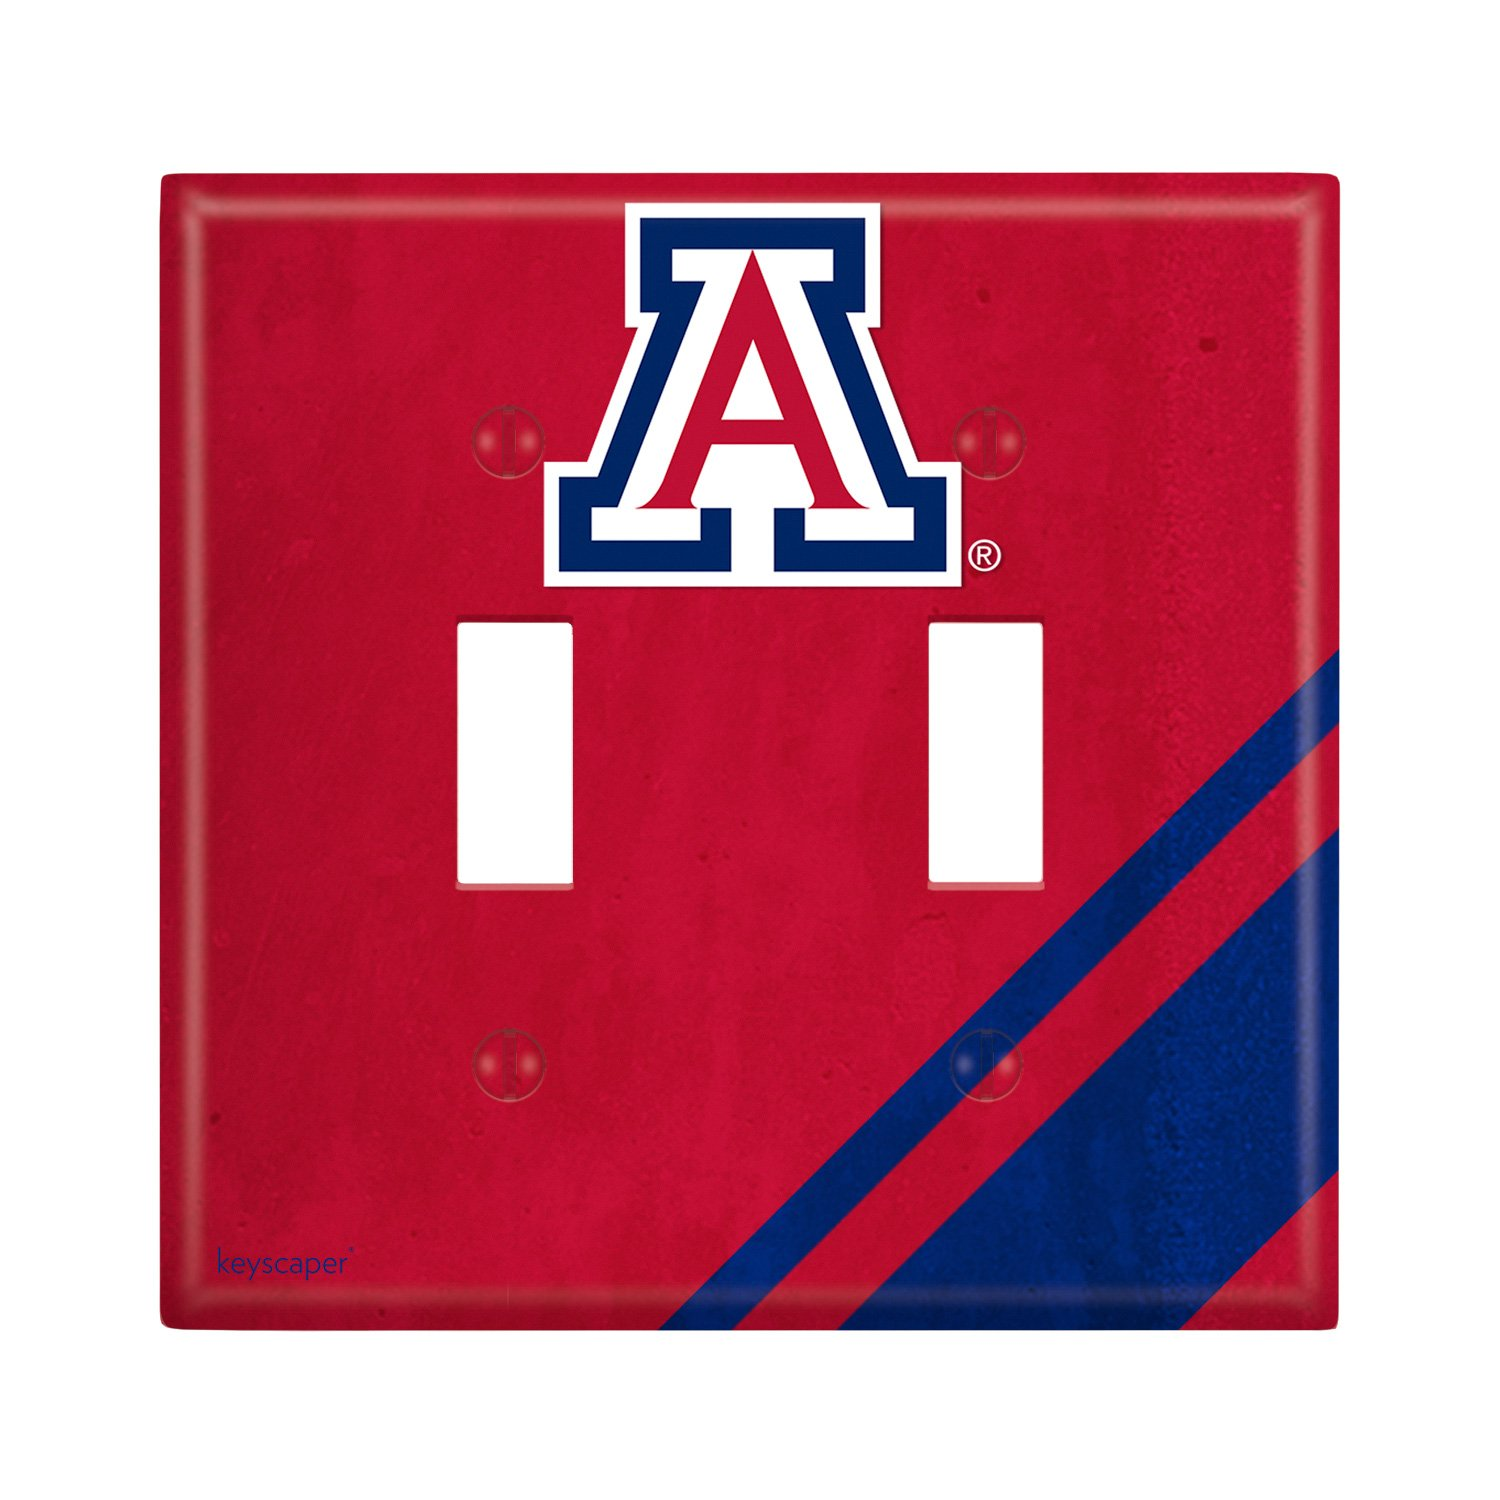 Keyscaper Arizona Wildcats Double Toggle Light Switch Cover NCAA